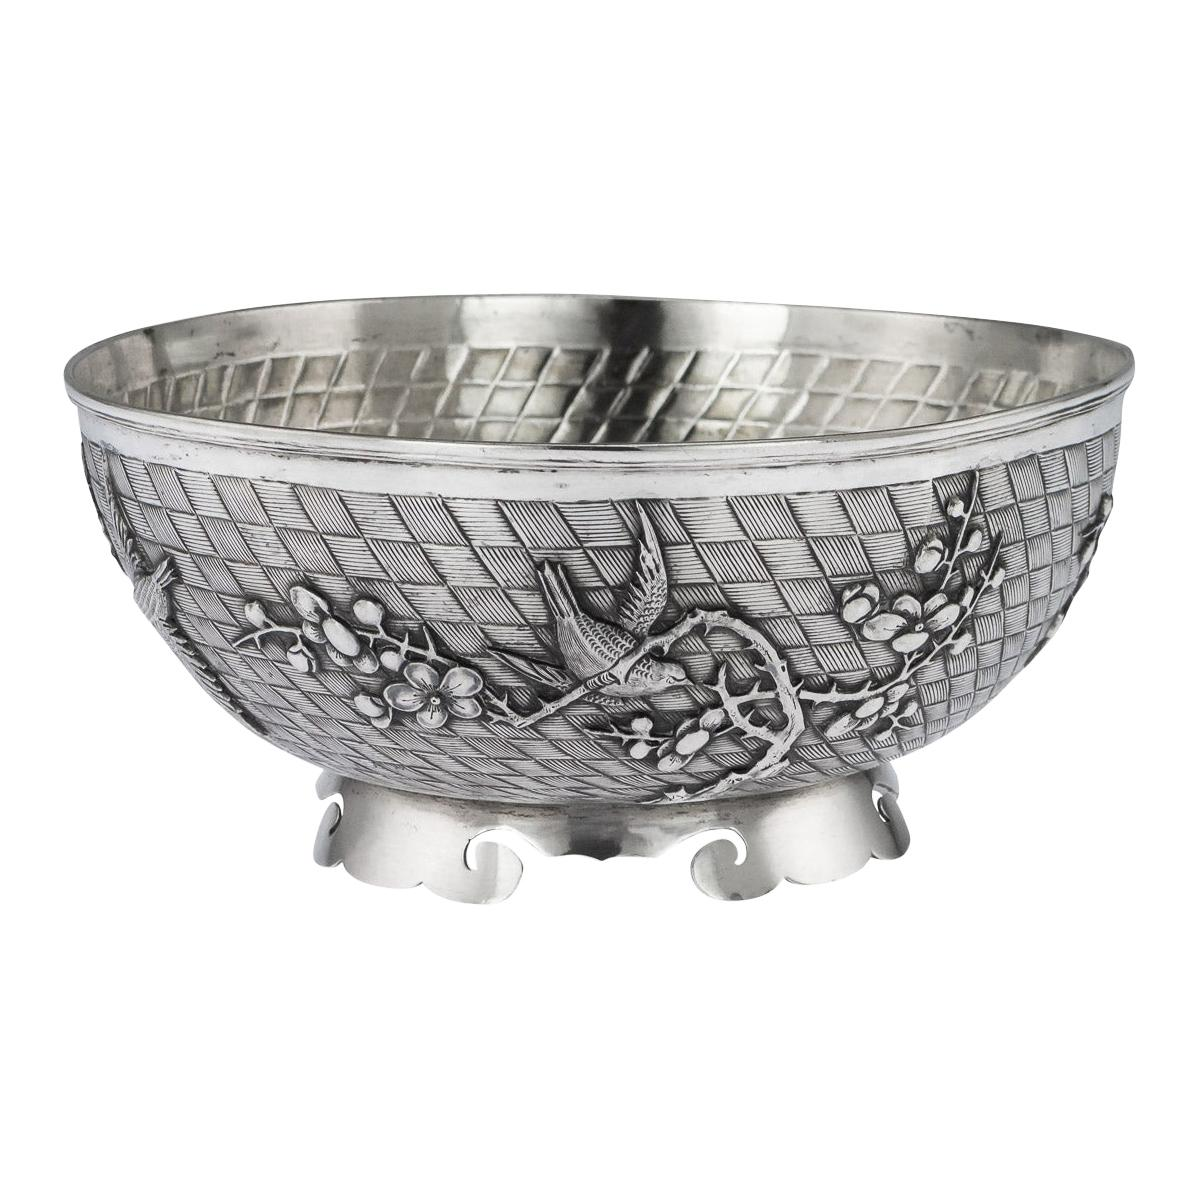 20th Century Chinese Export Solid Silver Bowl by Singfat, circa 1900